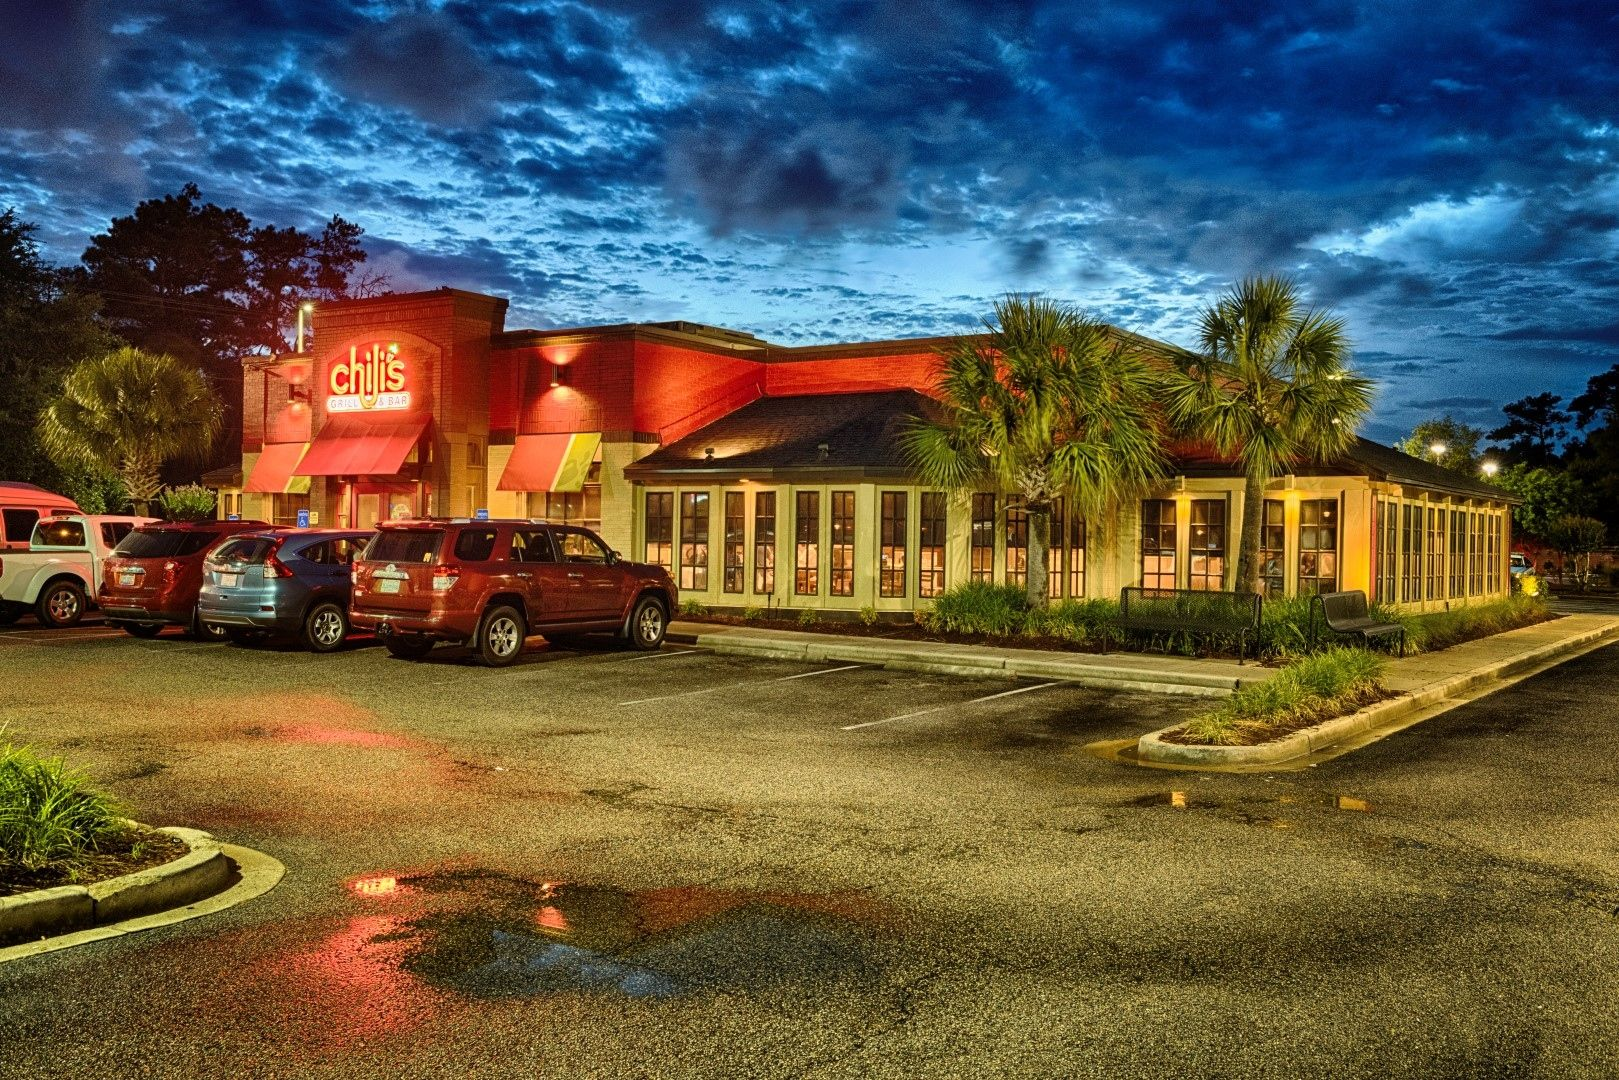 Chilis @ 4401 North Kings Highway Myrtle Beach, SC 29577 and 100 ...